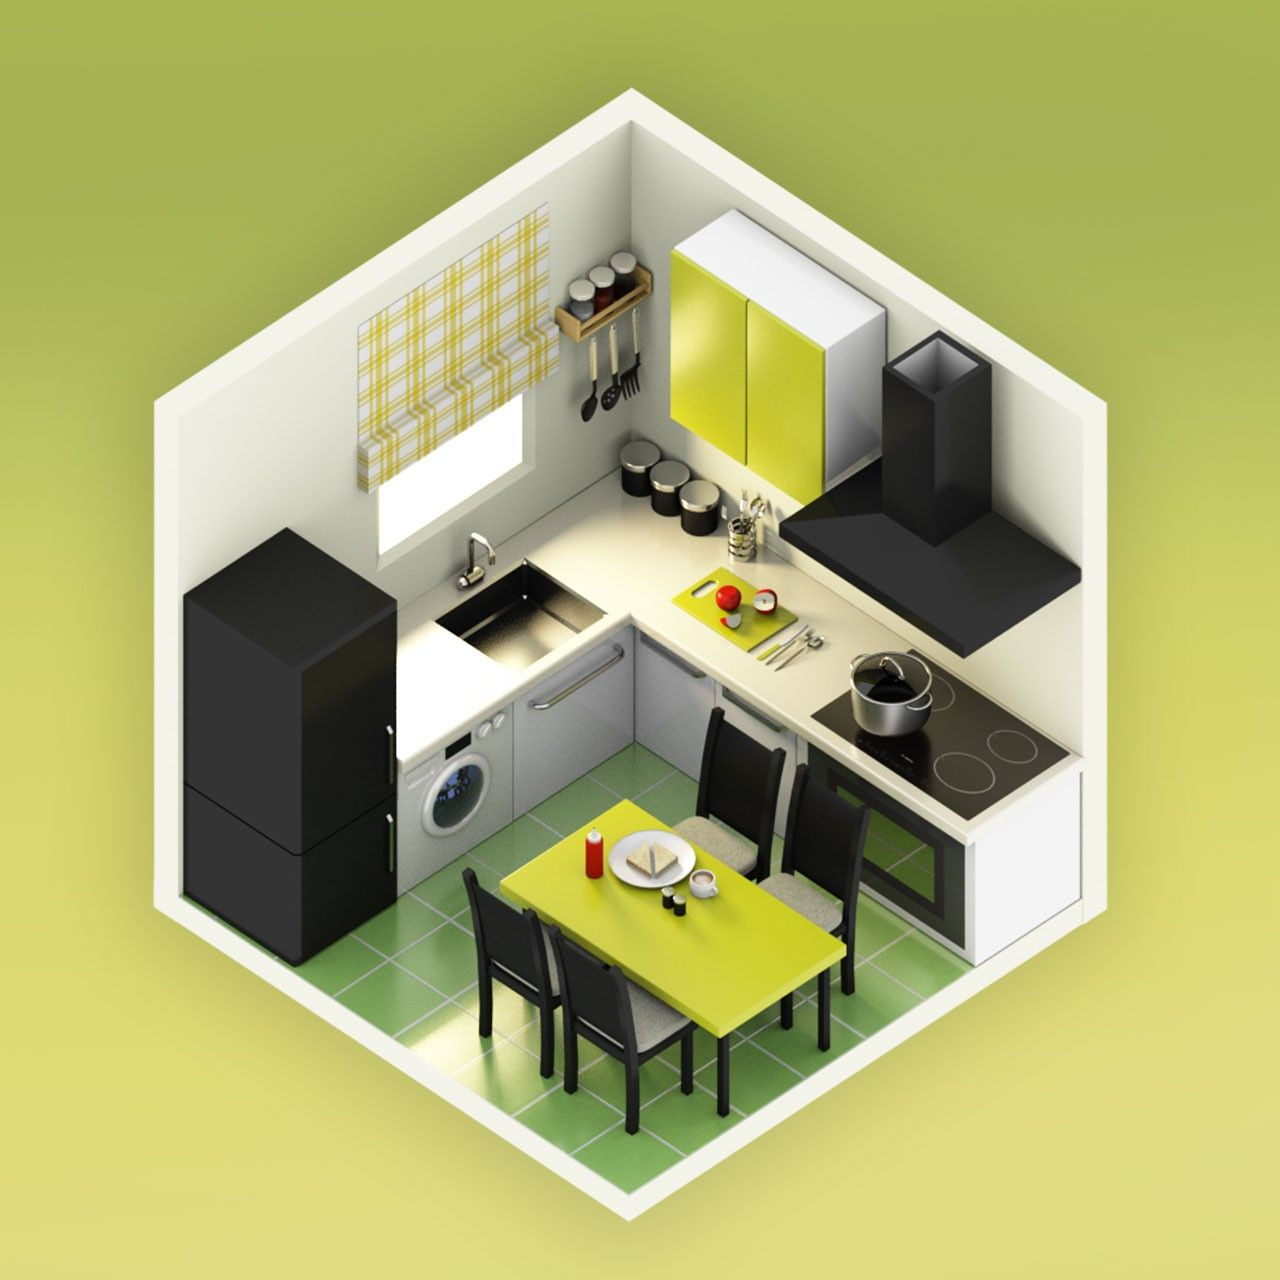 Isometric 3d Model Of Kitchen With Images Kitchen Design